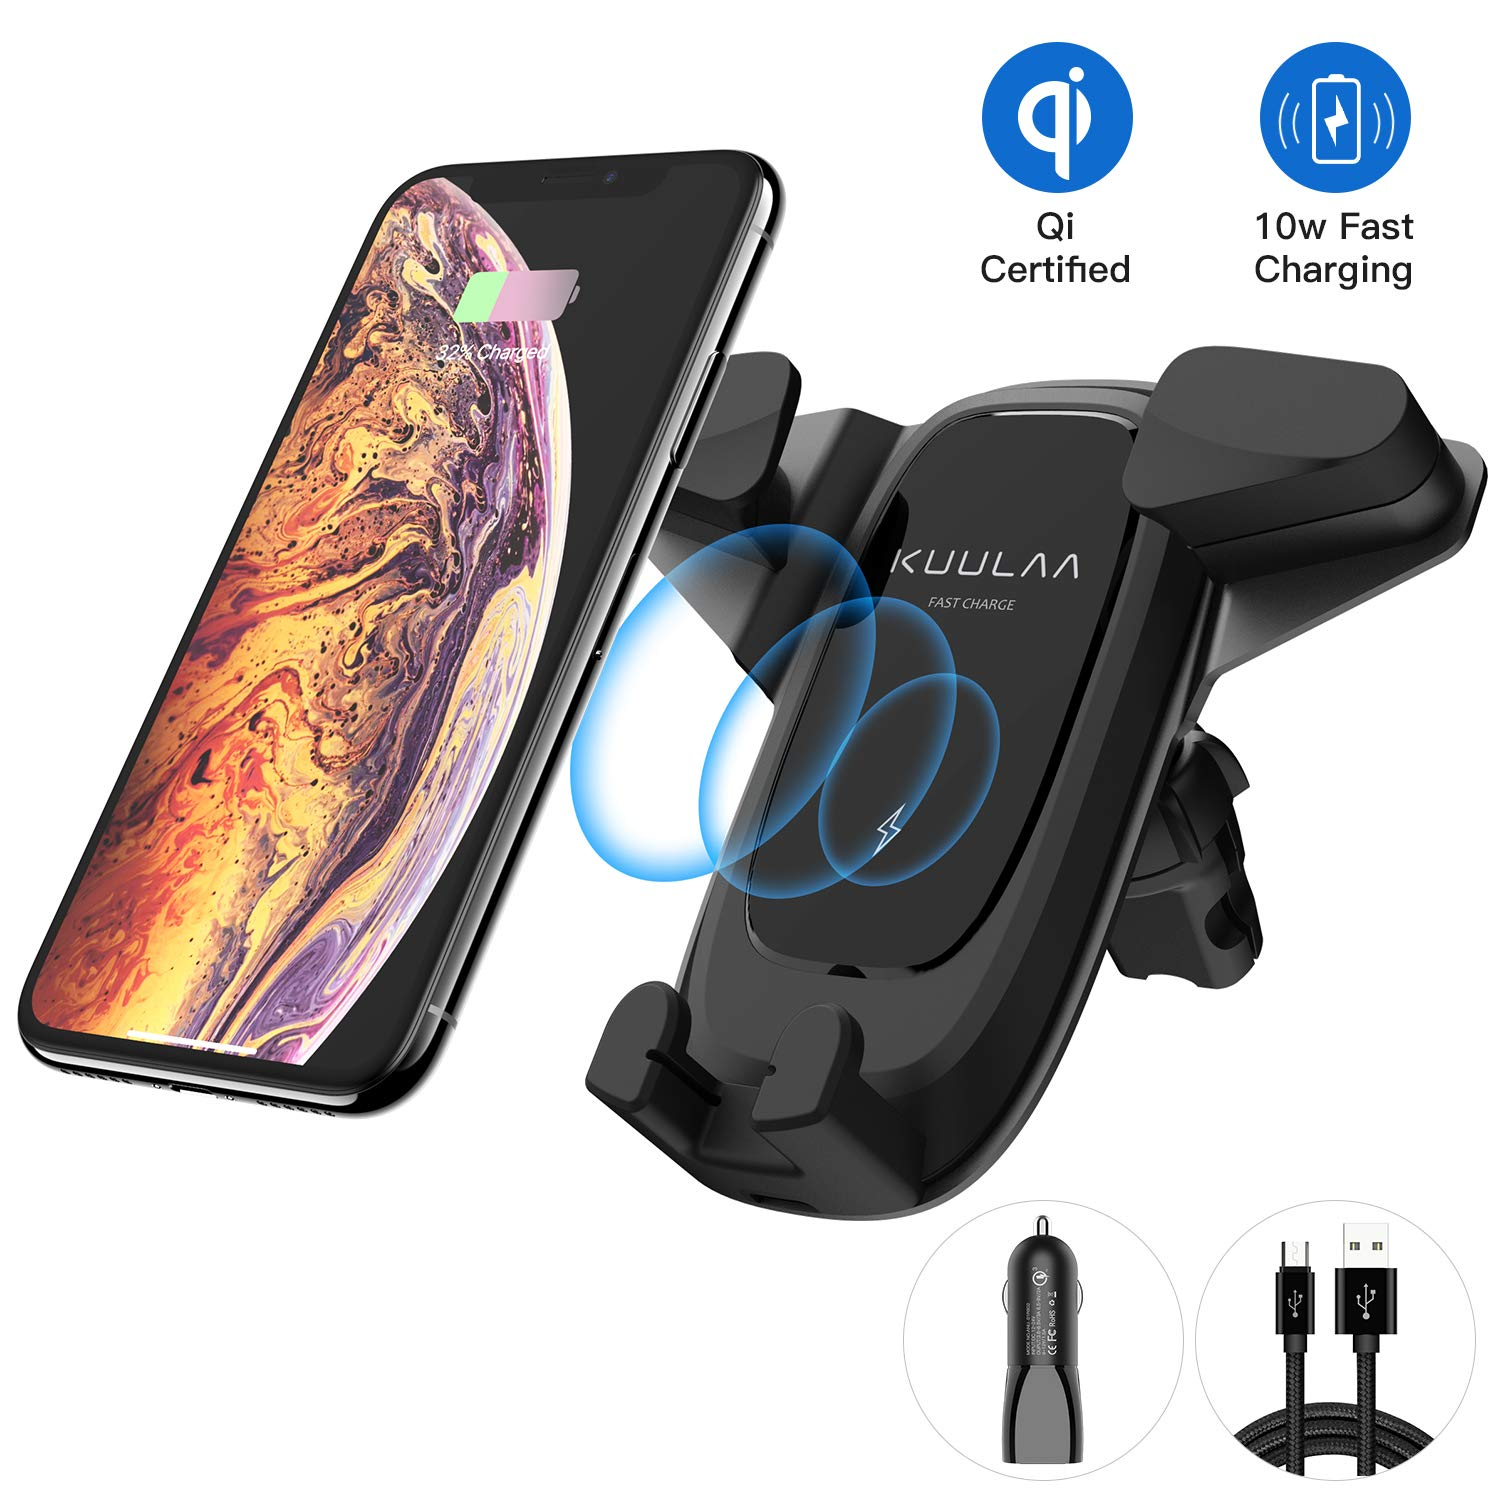 Wireless Car Charger, Kuulaa Qi Certified Wireless Charging Air Vent Car Mount with USB Car Charger, 10W 7.5W Fast Charger Cell Phone Holder for iPhone 8 XS MAX Samsung S10+ S9 Plus S8 Note 8 and More